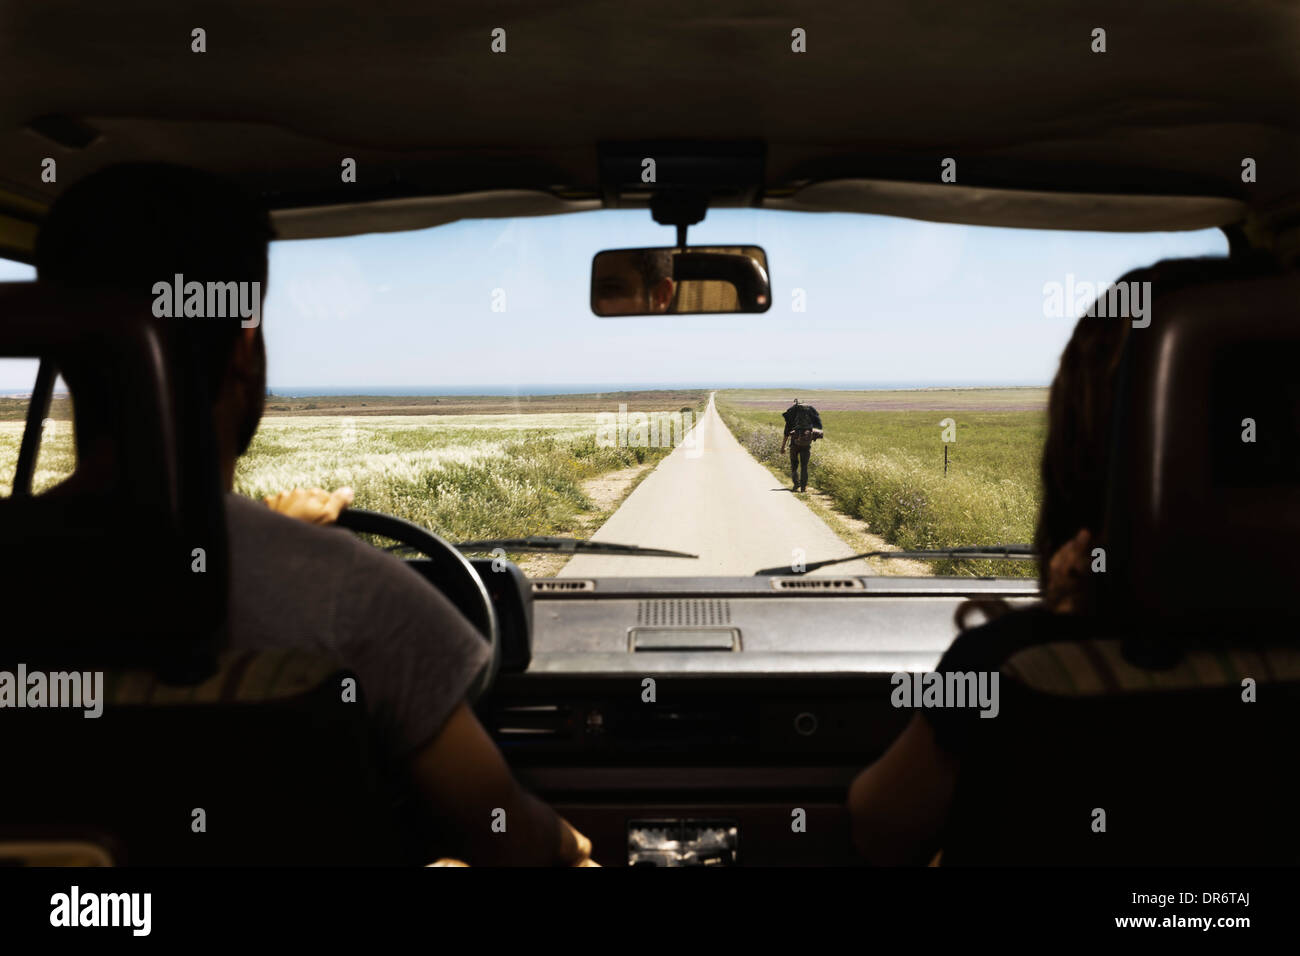 Southwest of Portugal, Couple on a road trip - Stock Image